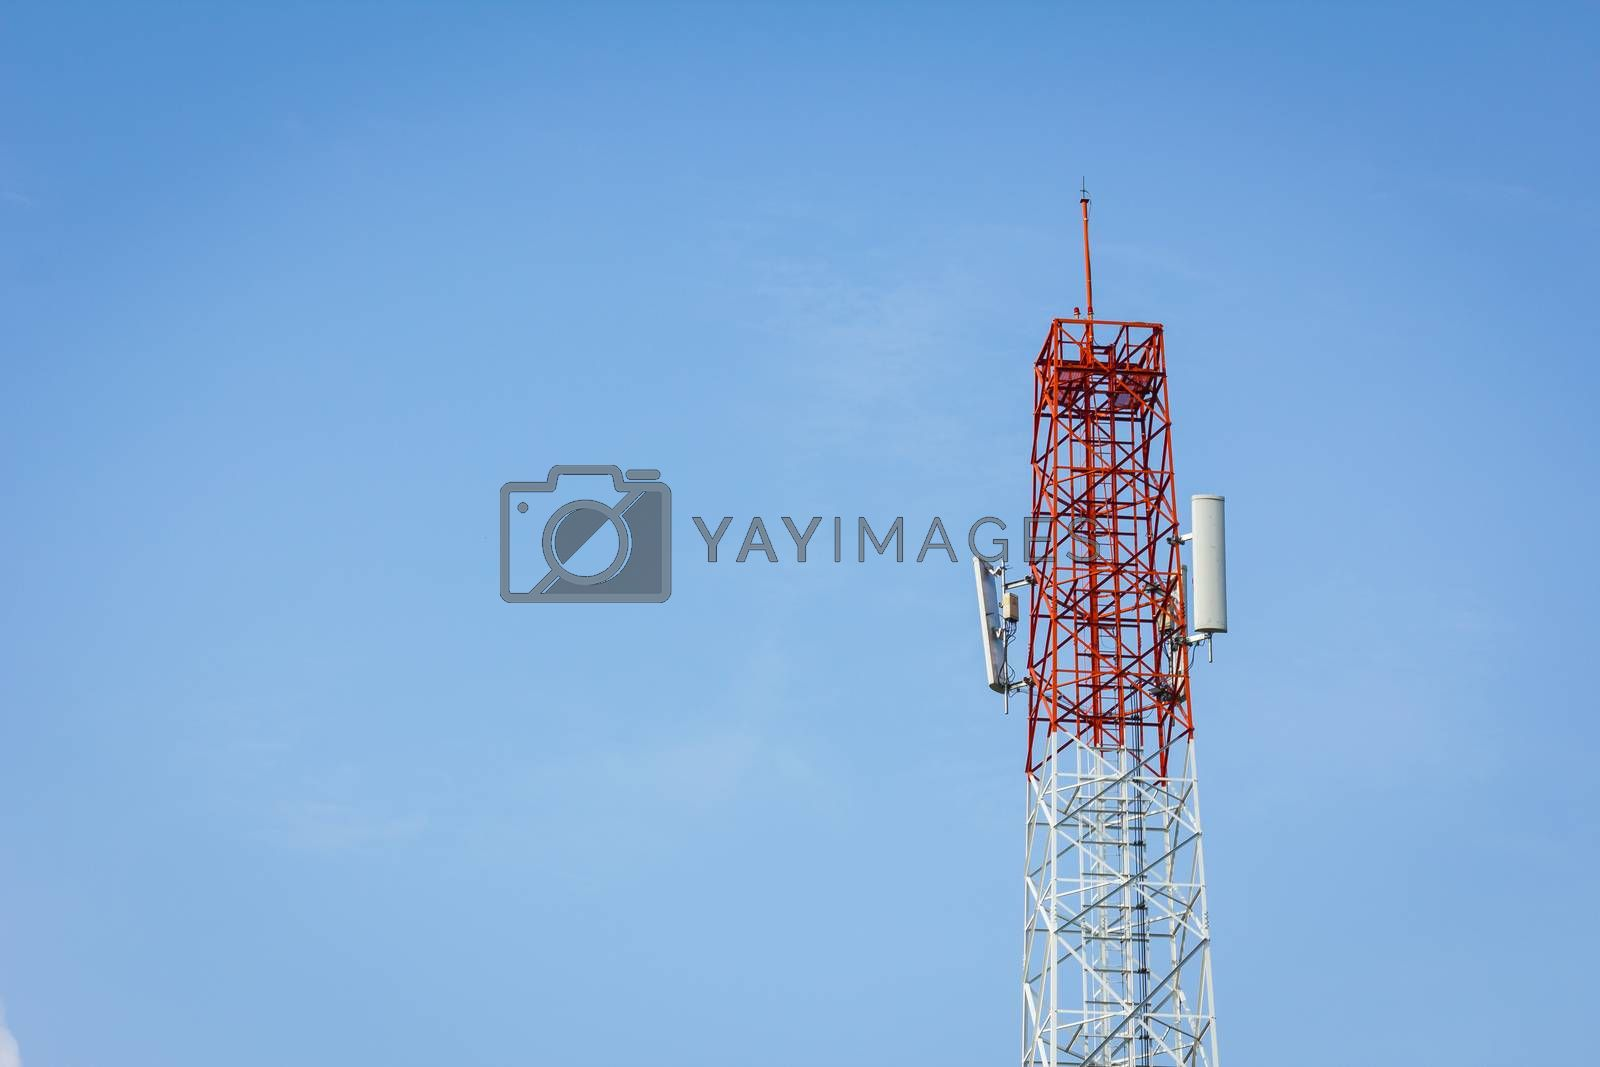 telecommunication tower and cloudy blue sky with copyspace on the left